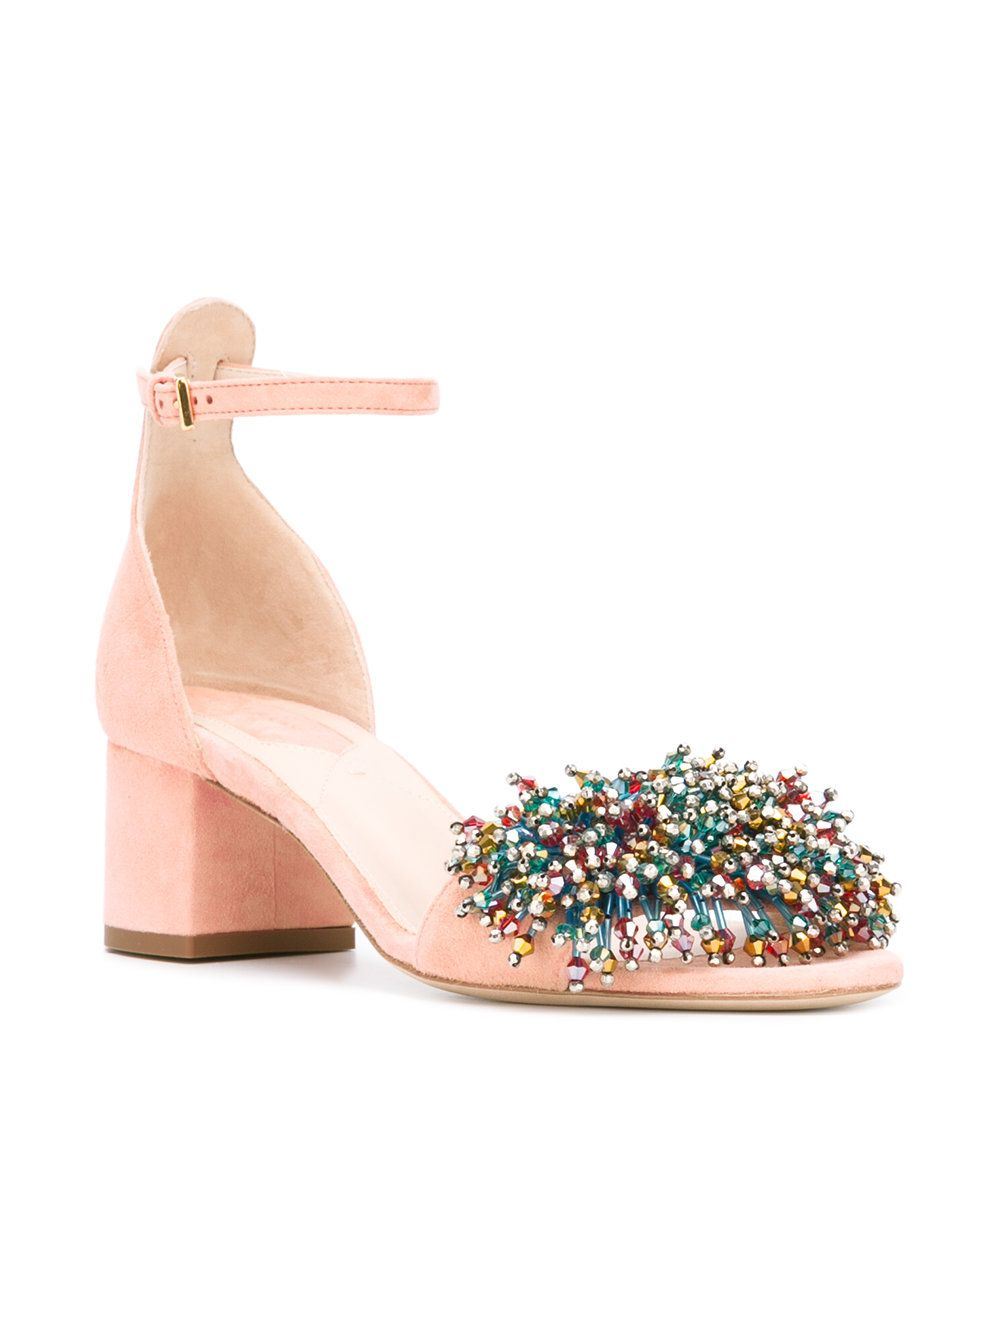 Elie Saab bead embellished sandals